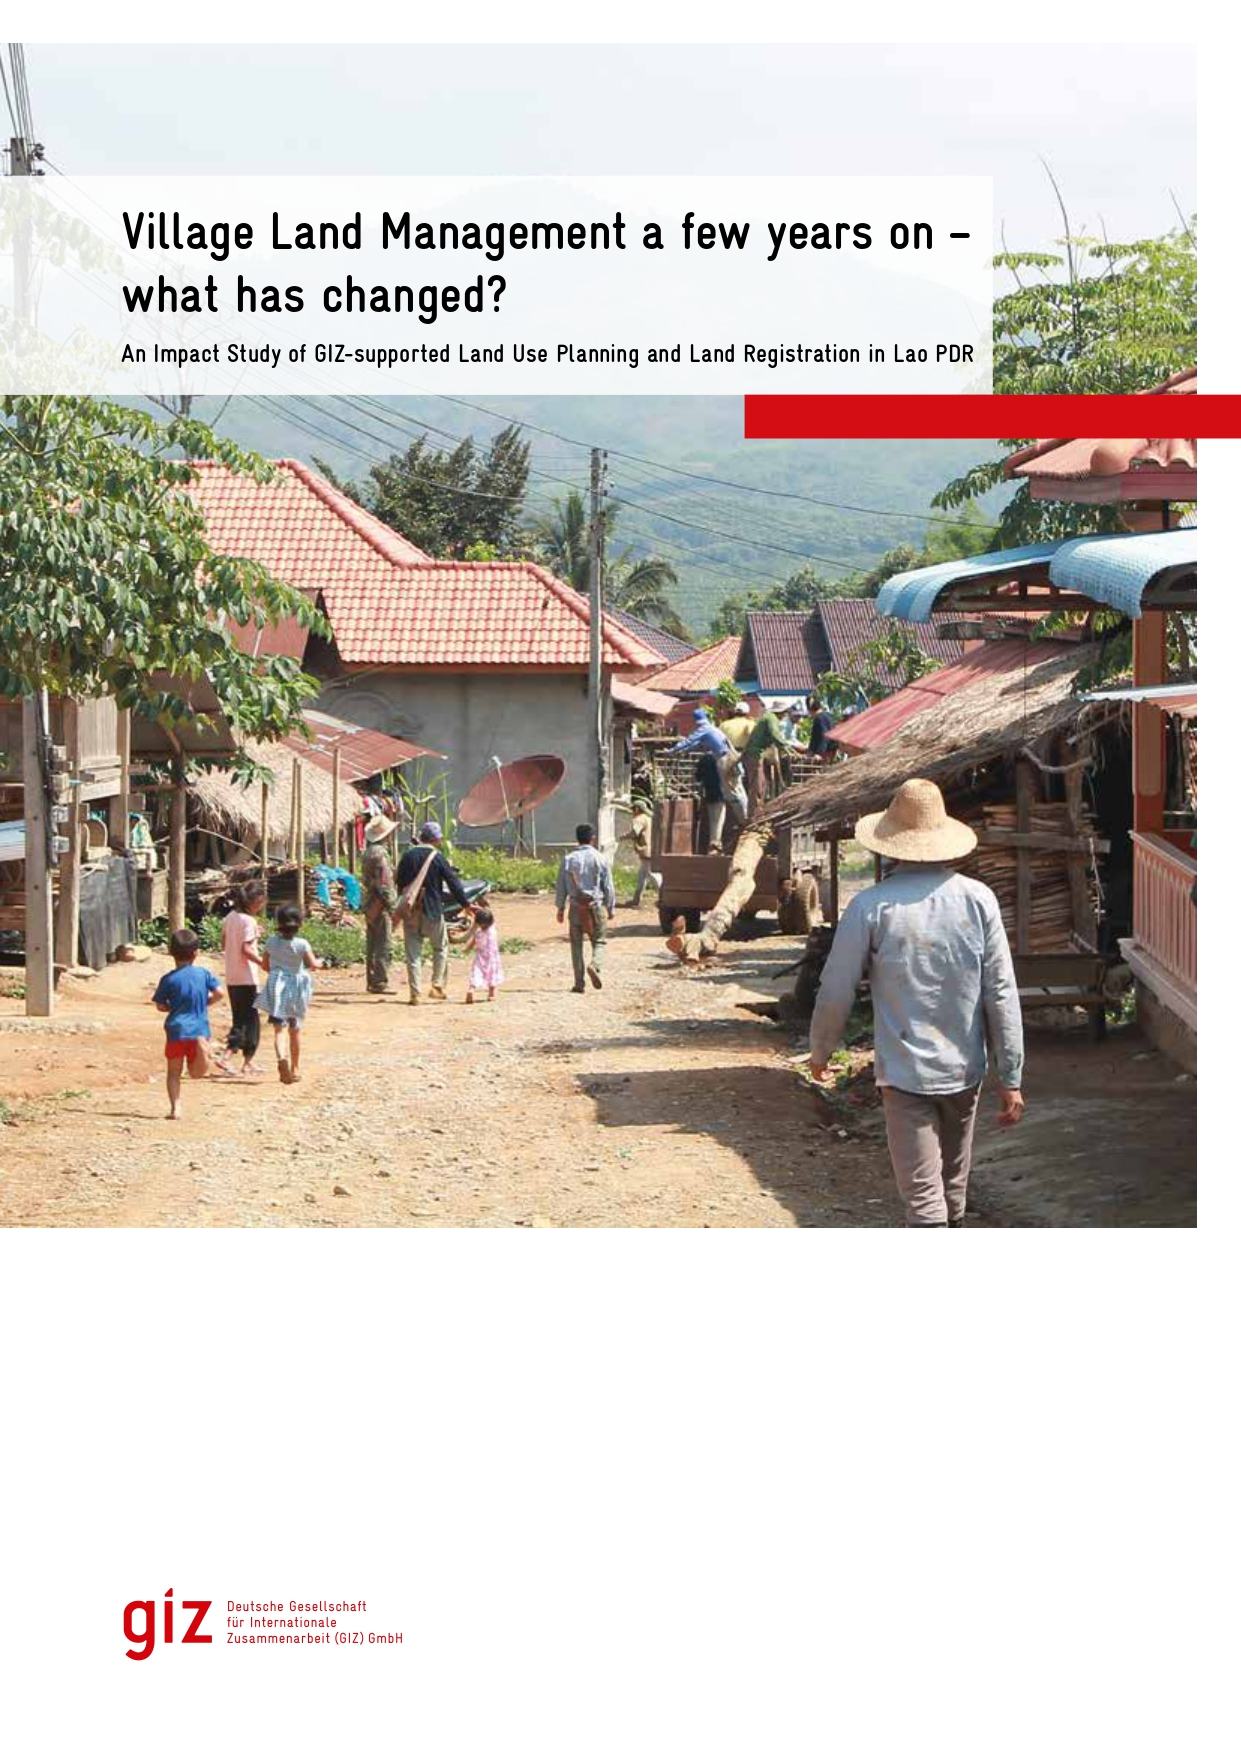 GIZ (2019) Village Land Management a few years on. An Impact Study of GIZ supported Land Use Planning and Land Registration in Lao PDR .jpg